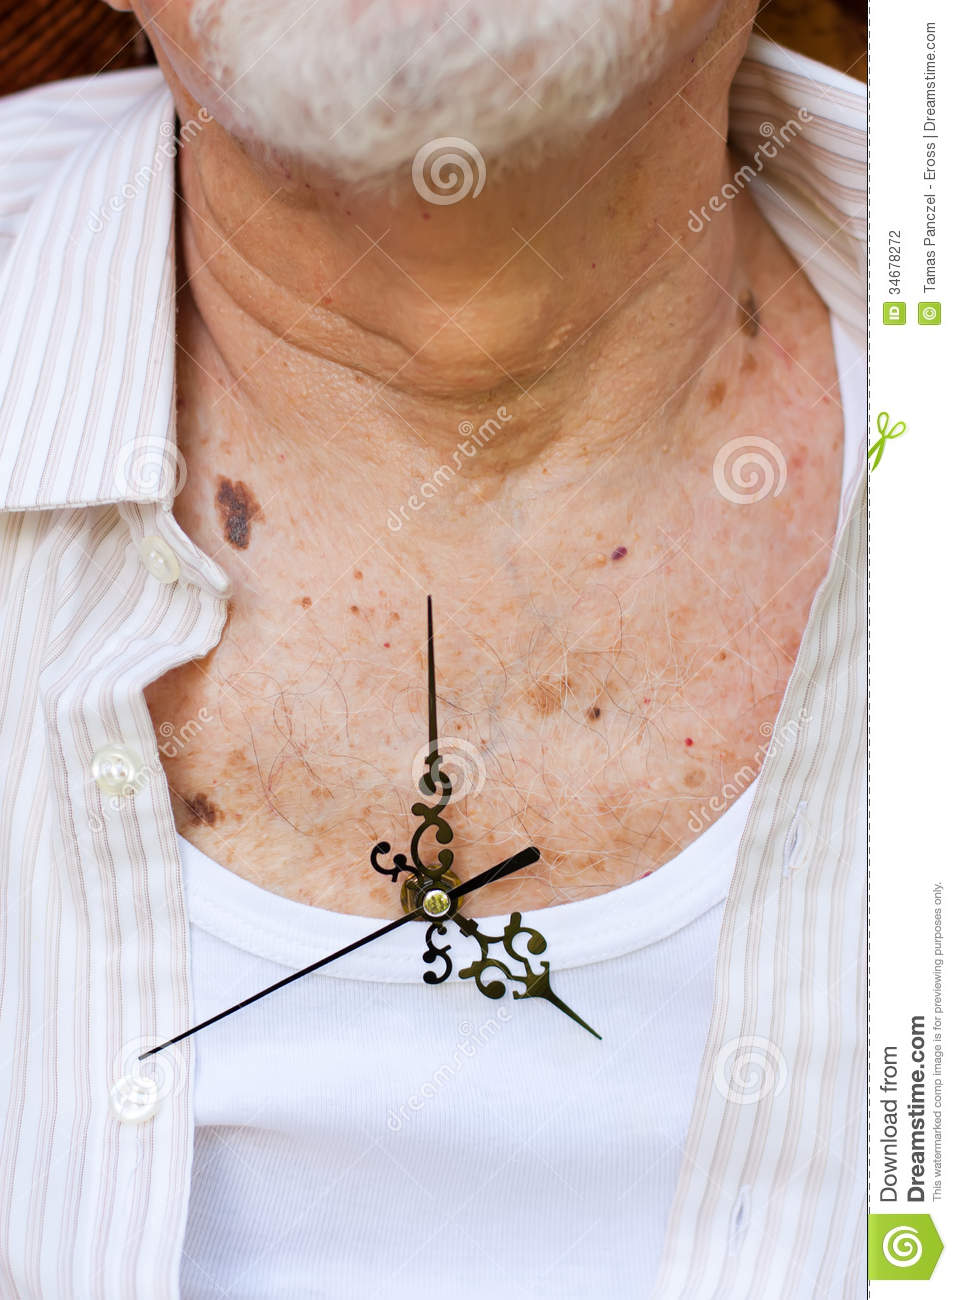 Clock Hands Placed On An Elderly Man S Chest